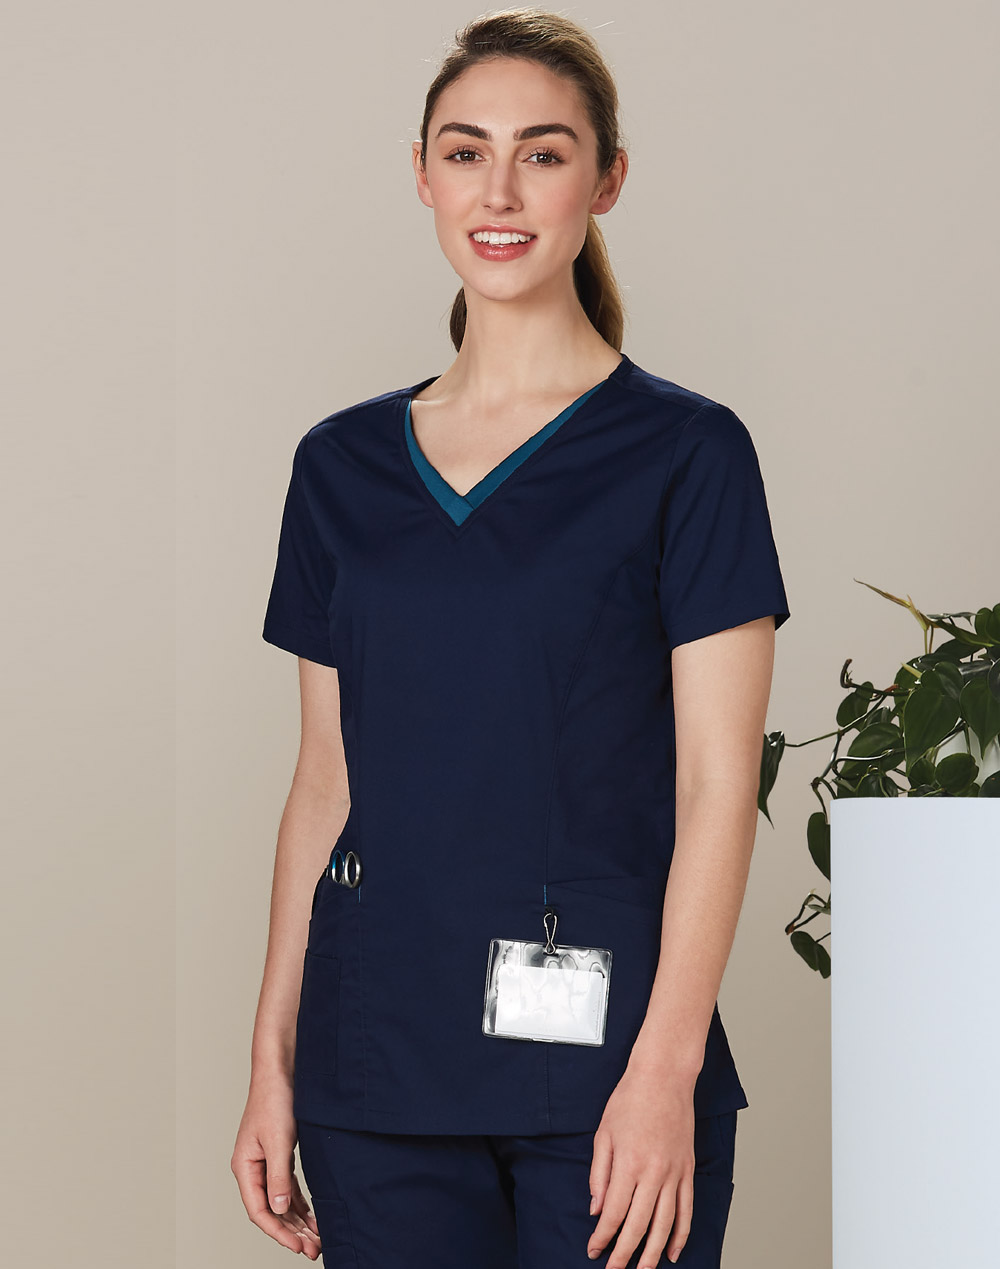 Promotional Ladies v-Neck Contrast Trim Scrub Top in Perth